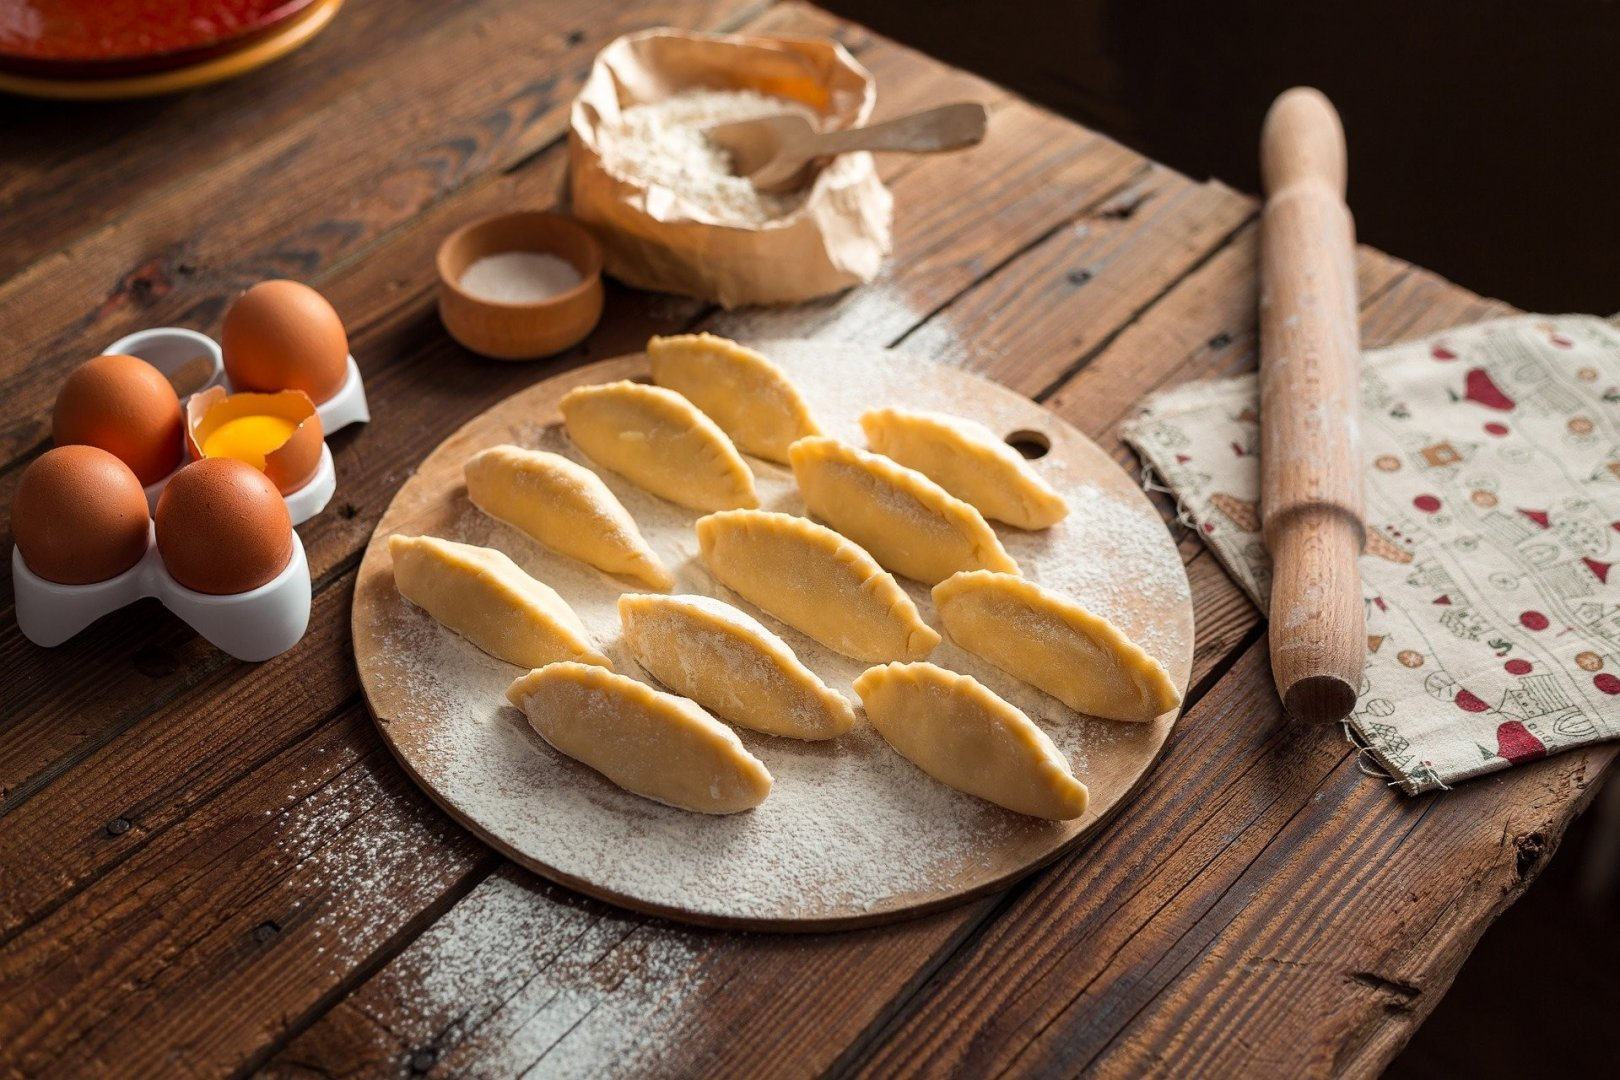 Food tasting and workshops in Poland